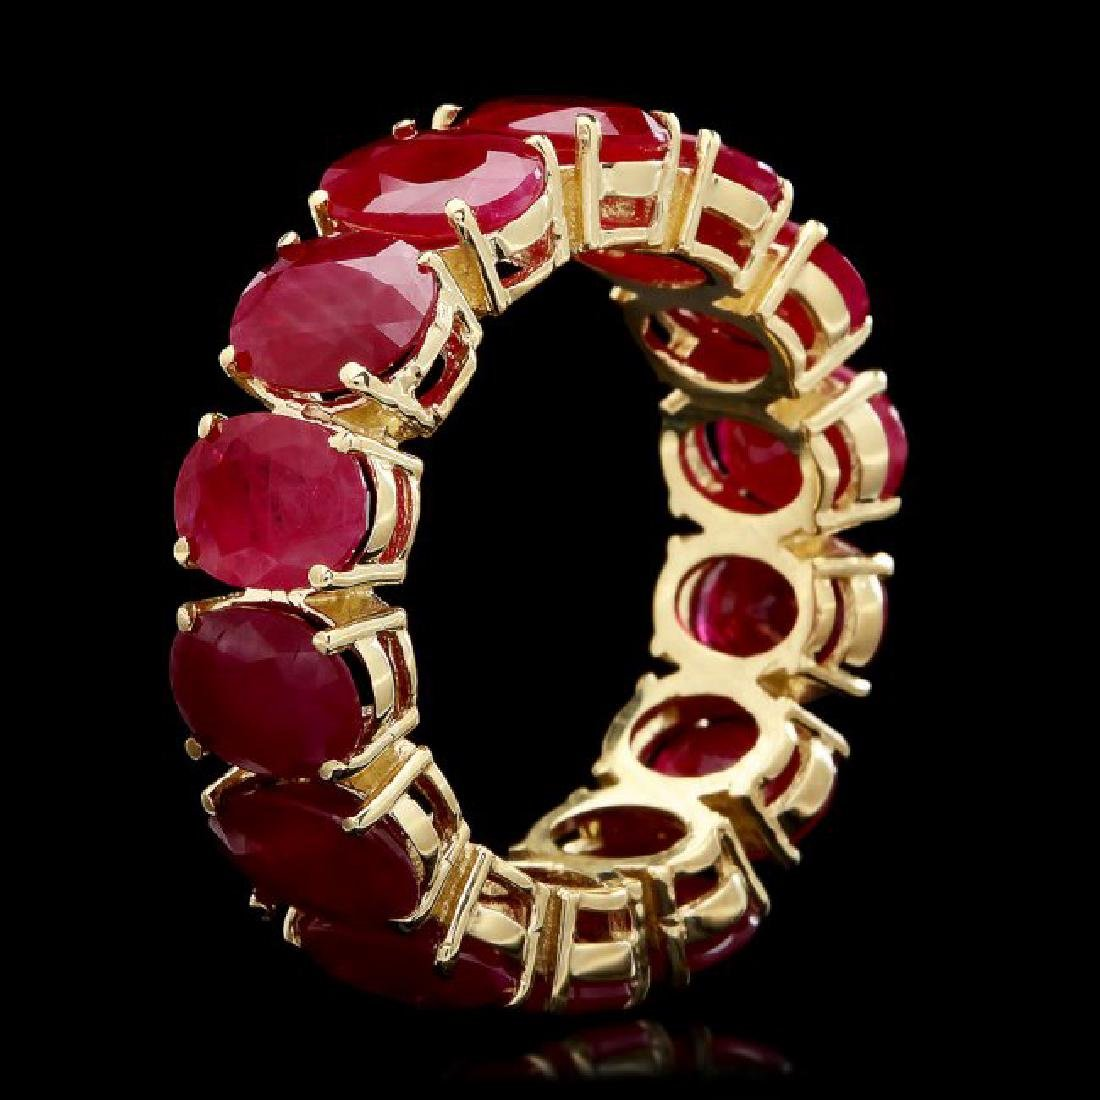 14k Yellow Gold 11.40ct Ruby Ring - 2